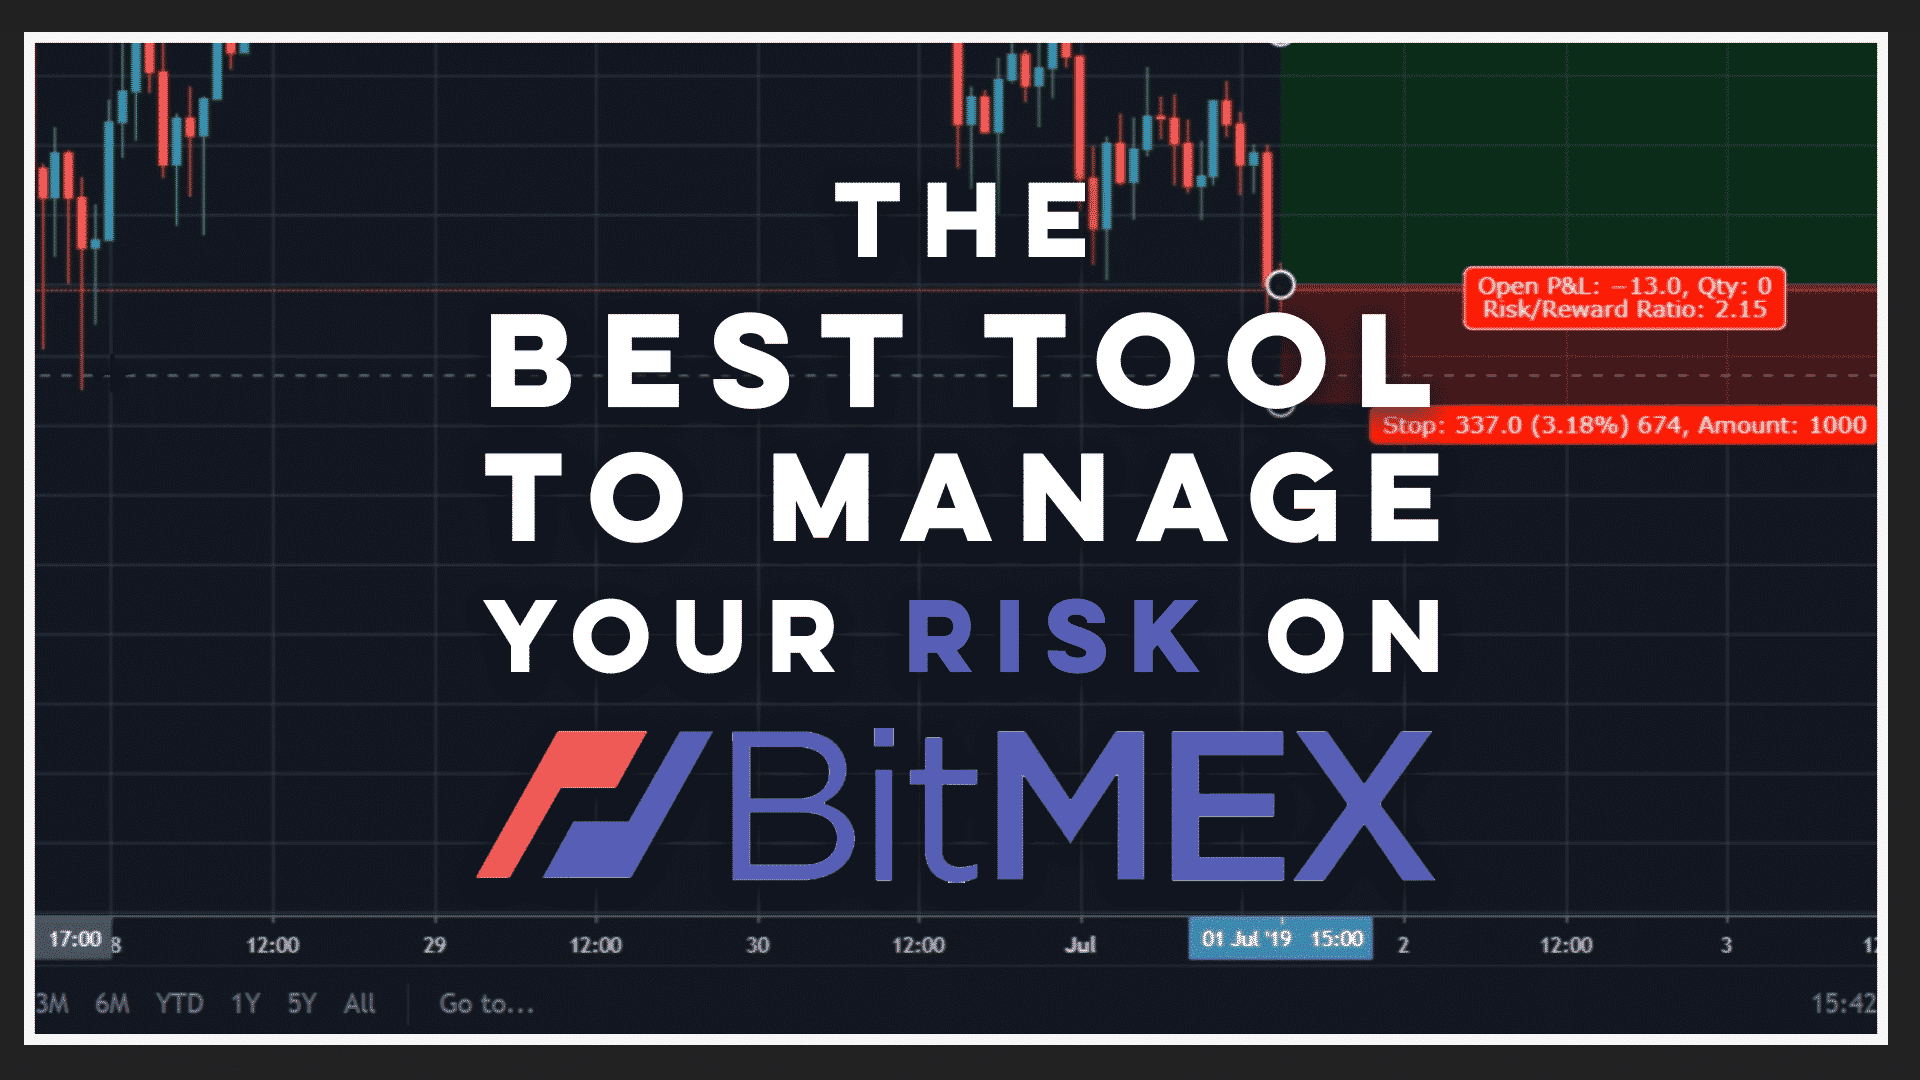 The Best Tool to manage your Risk on BitMEX (Video)